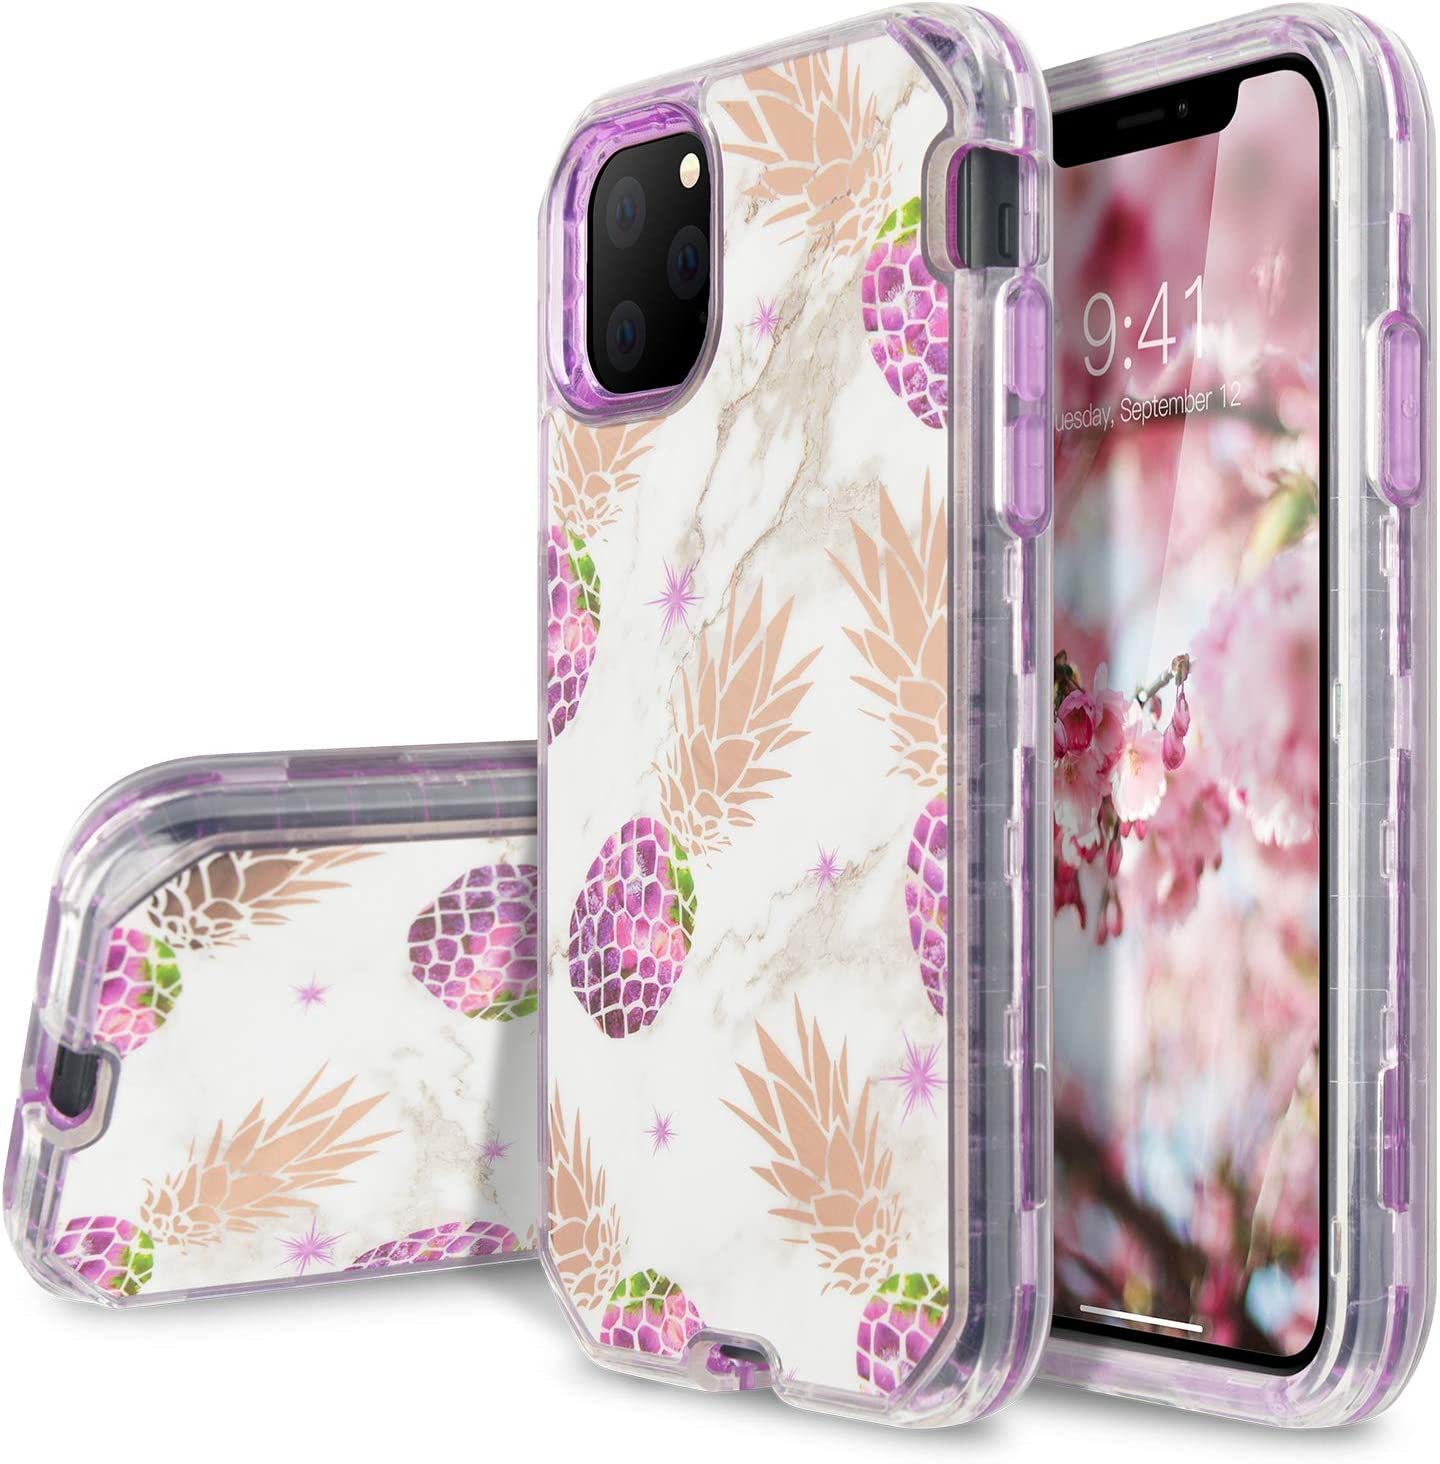 iPhone 11 Case, Full Body 3 in 1 Heavy Duty Hybrid Sturdy Armor Marble High Impact Shockproof Protective Anti-Scratch Cover Case for Apple iPhone 11,Purple Pineapple